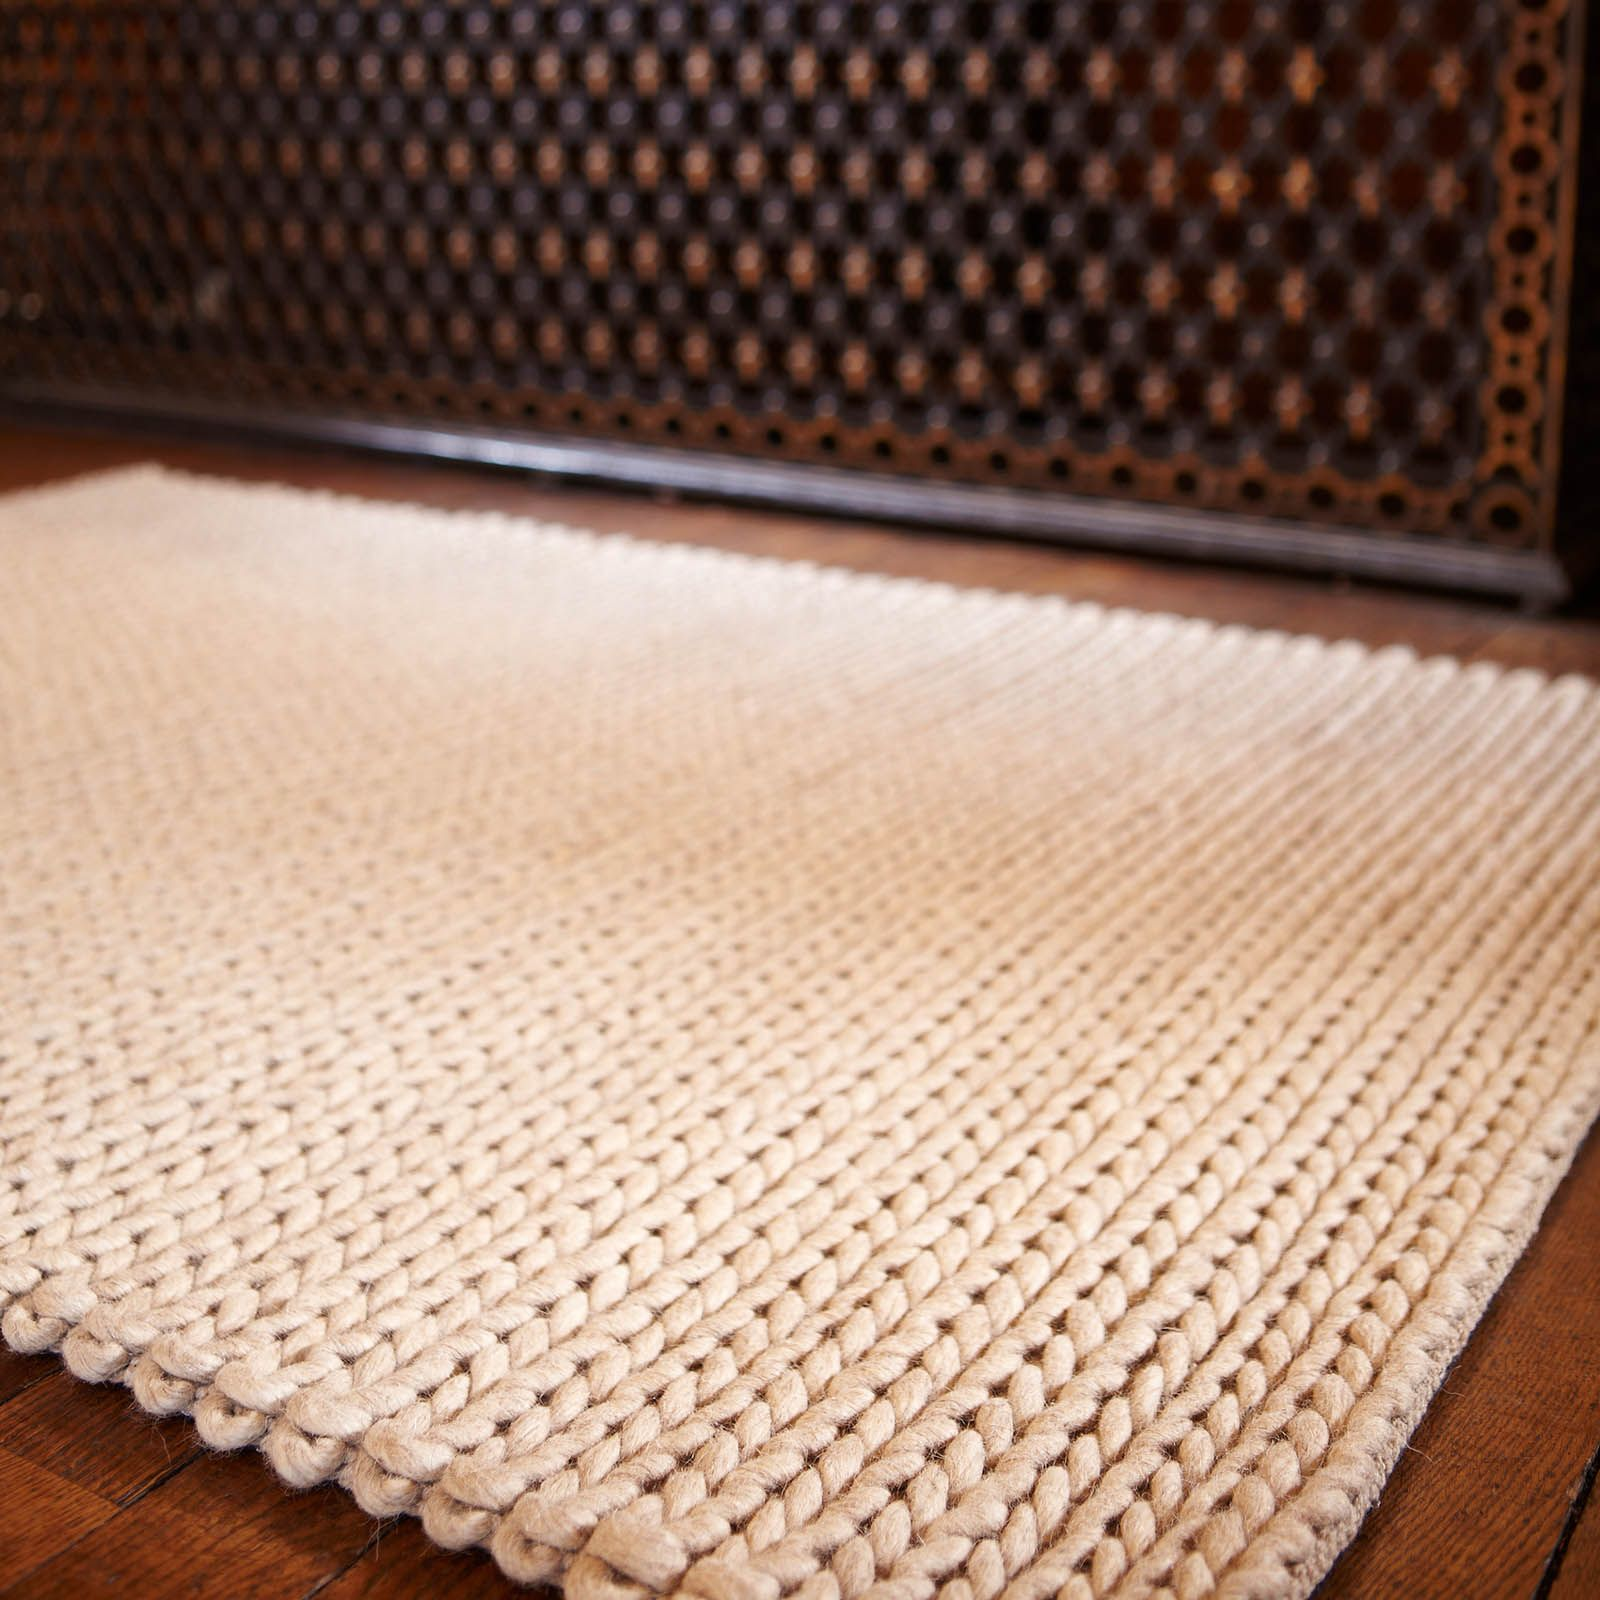 Zurich Wool Rugs Feature A Chunky Knitted Design In